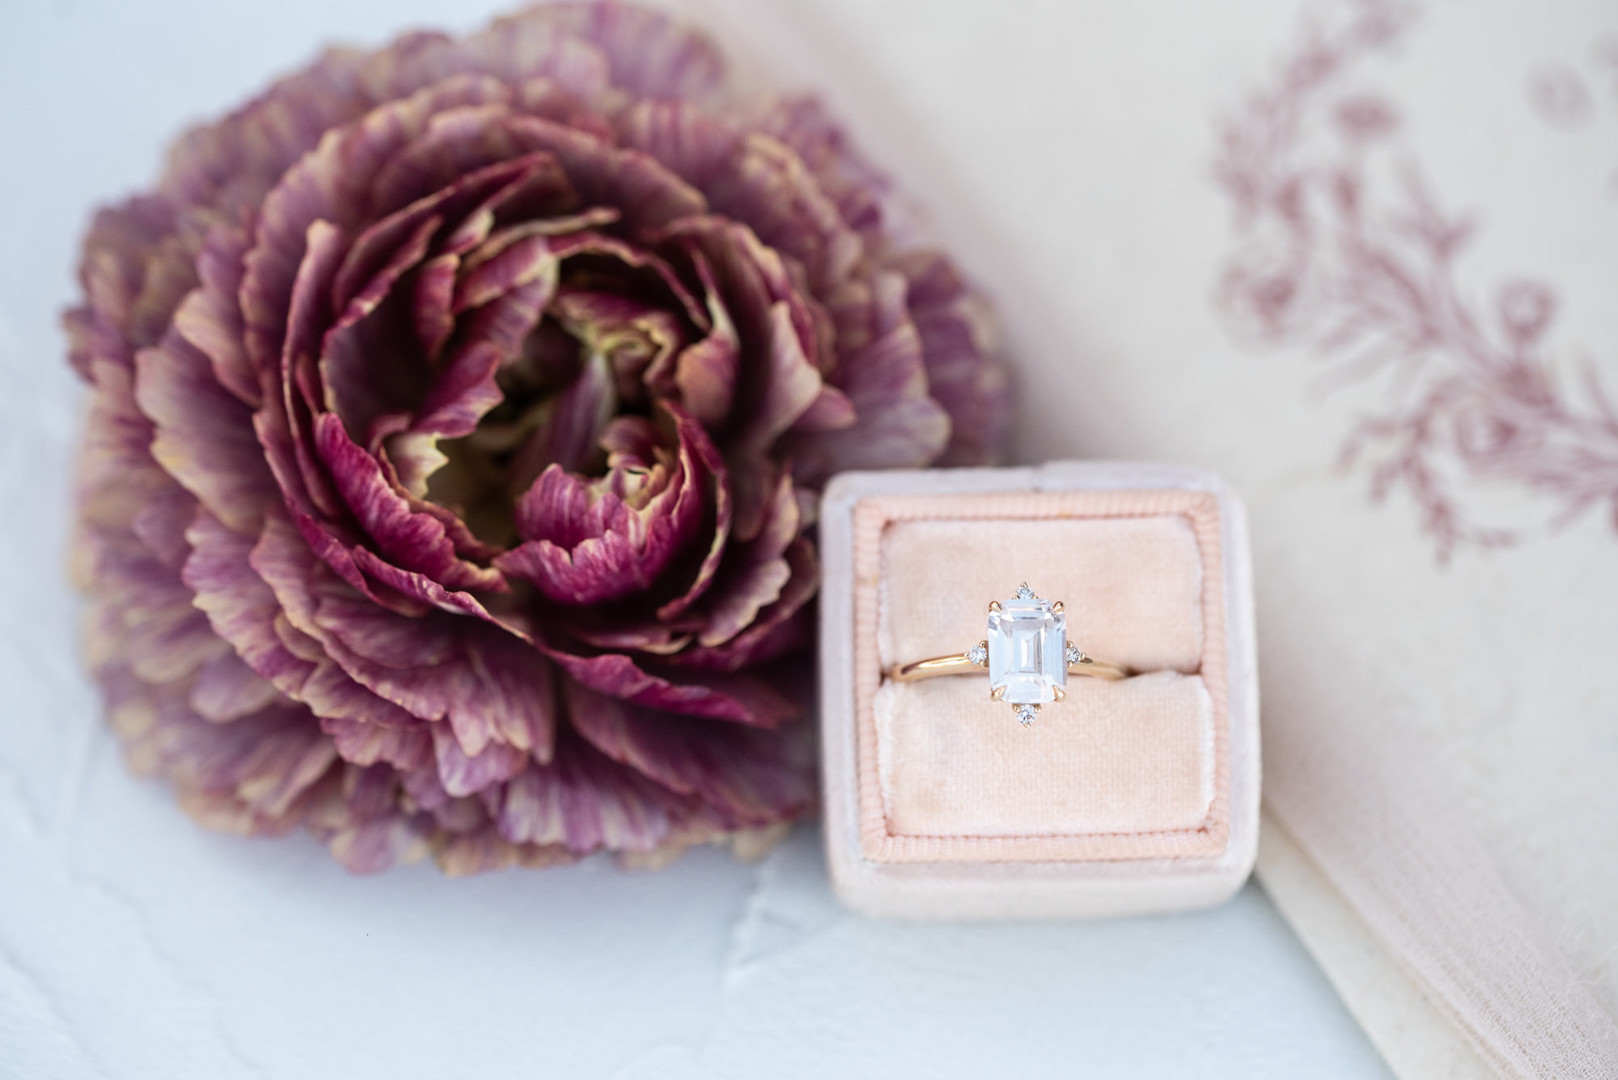 Engagement ring in blush ring box.